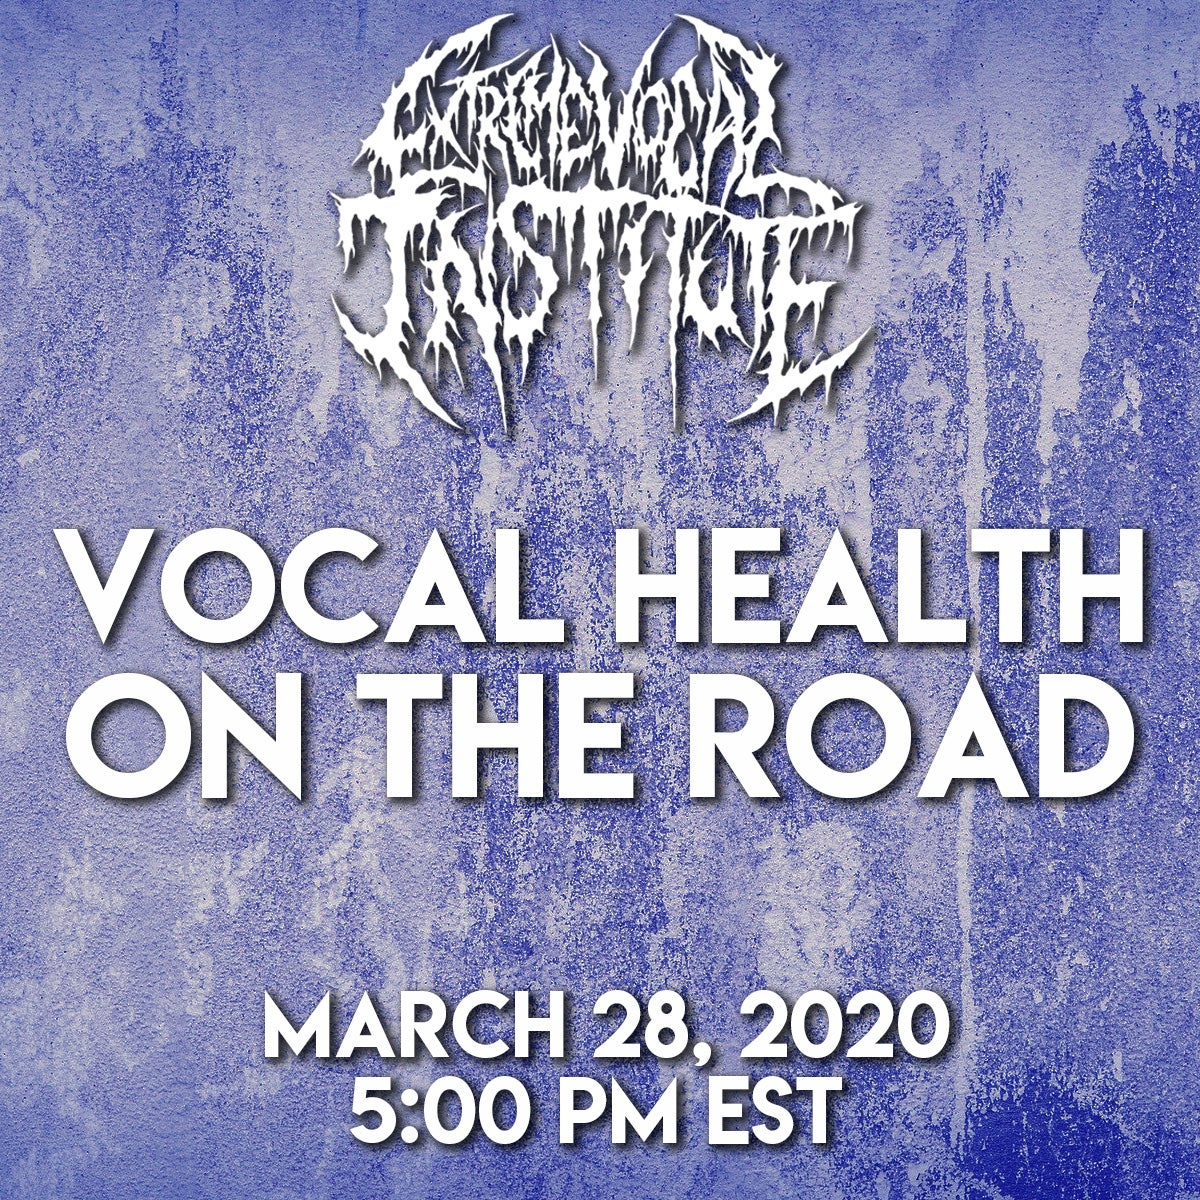 3/28 - Vocal Health on the Road